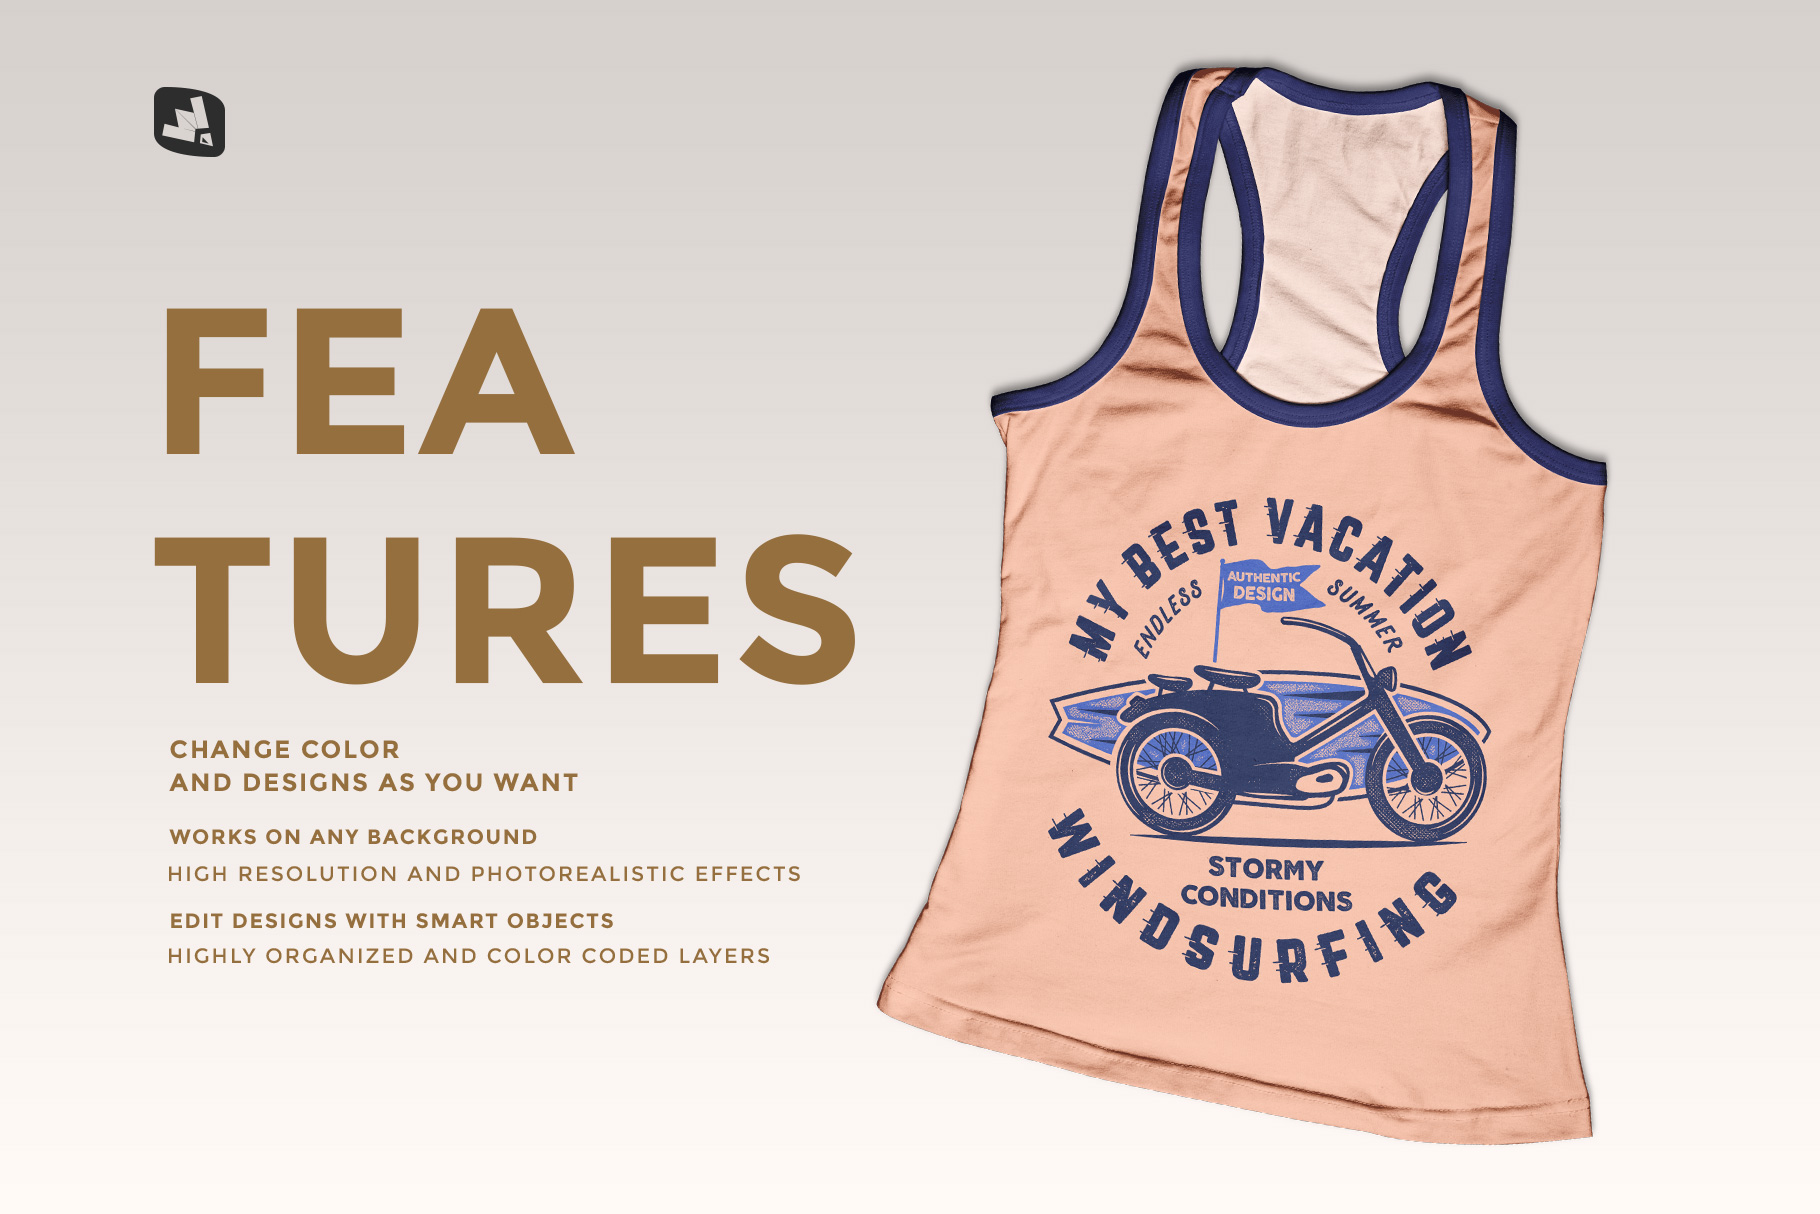 features of the top view female tank top mockup